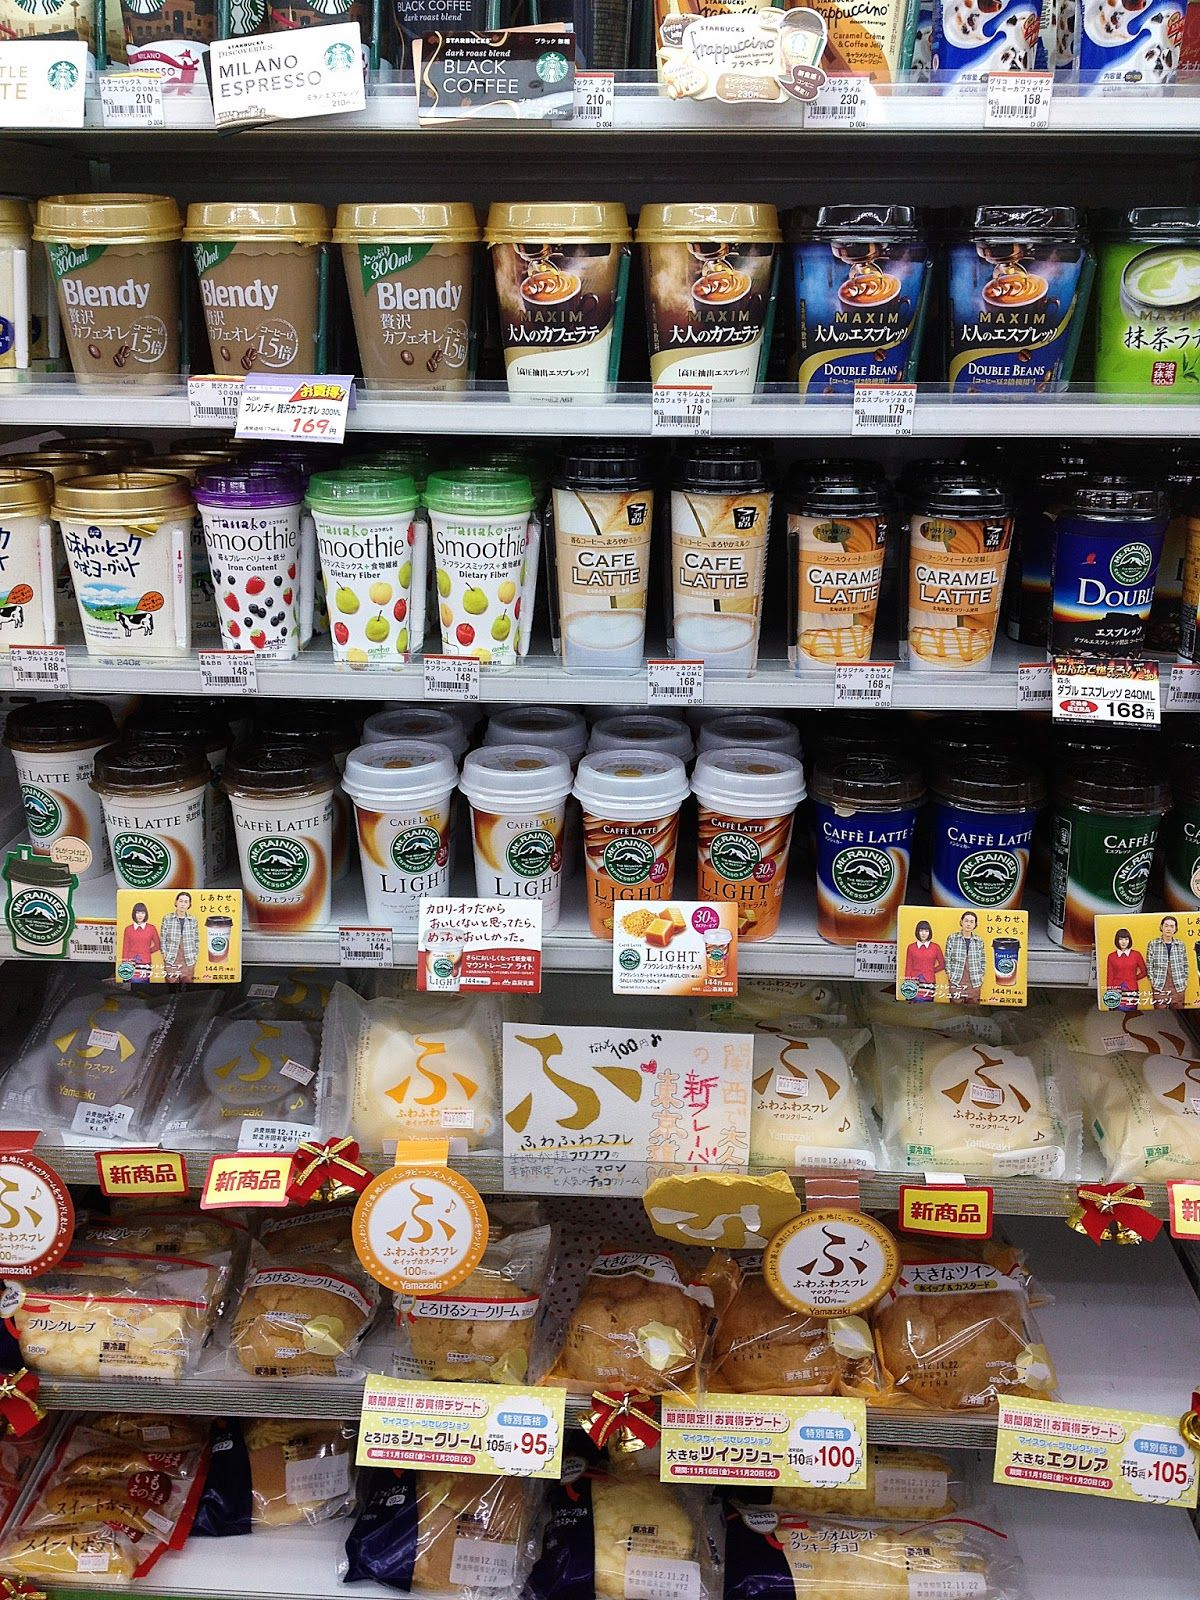 Japanese Grocery Shop Near Me Grocery stores in Japan Mark